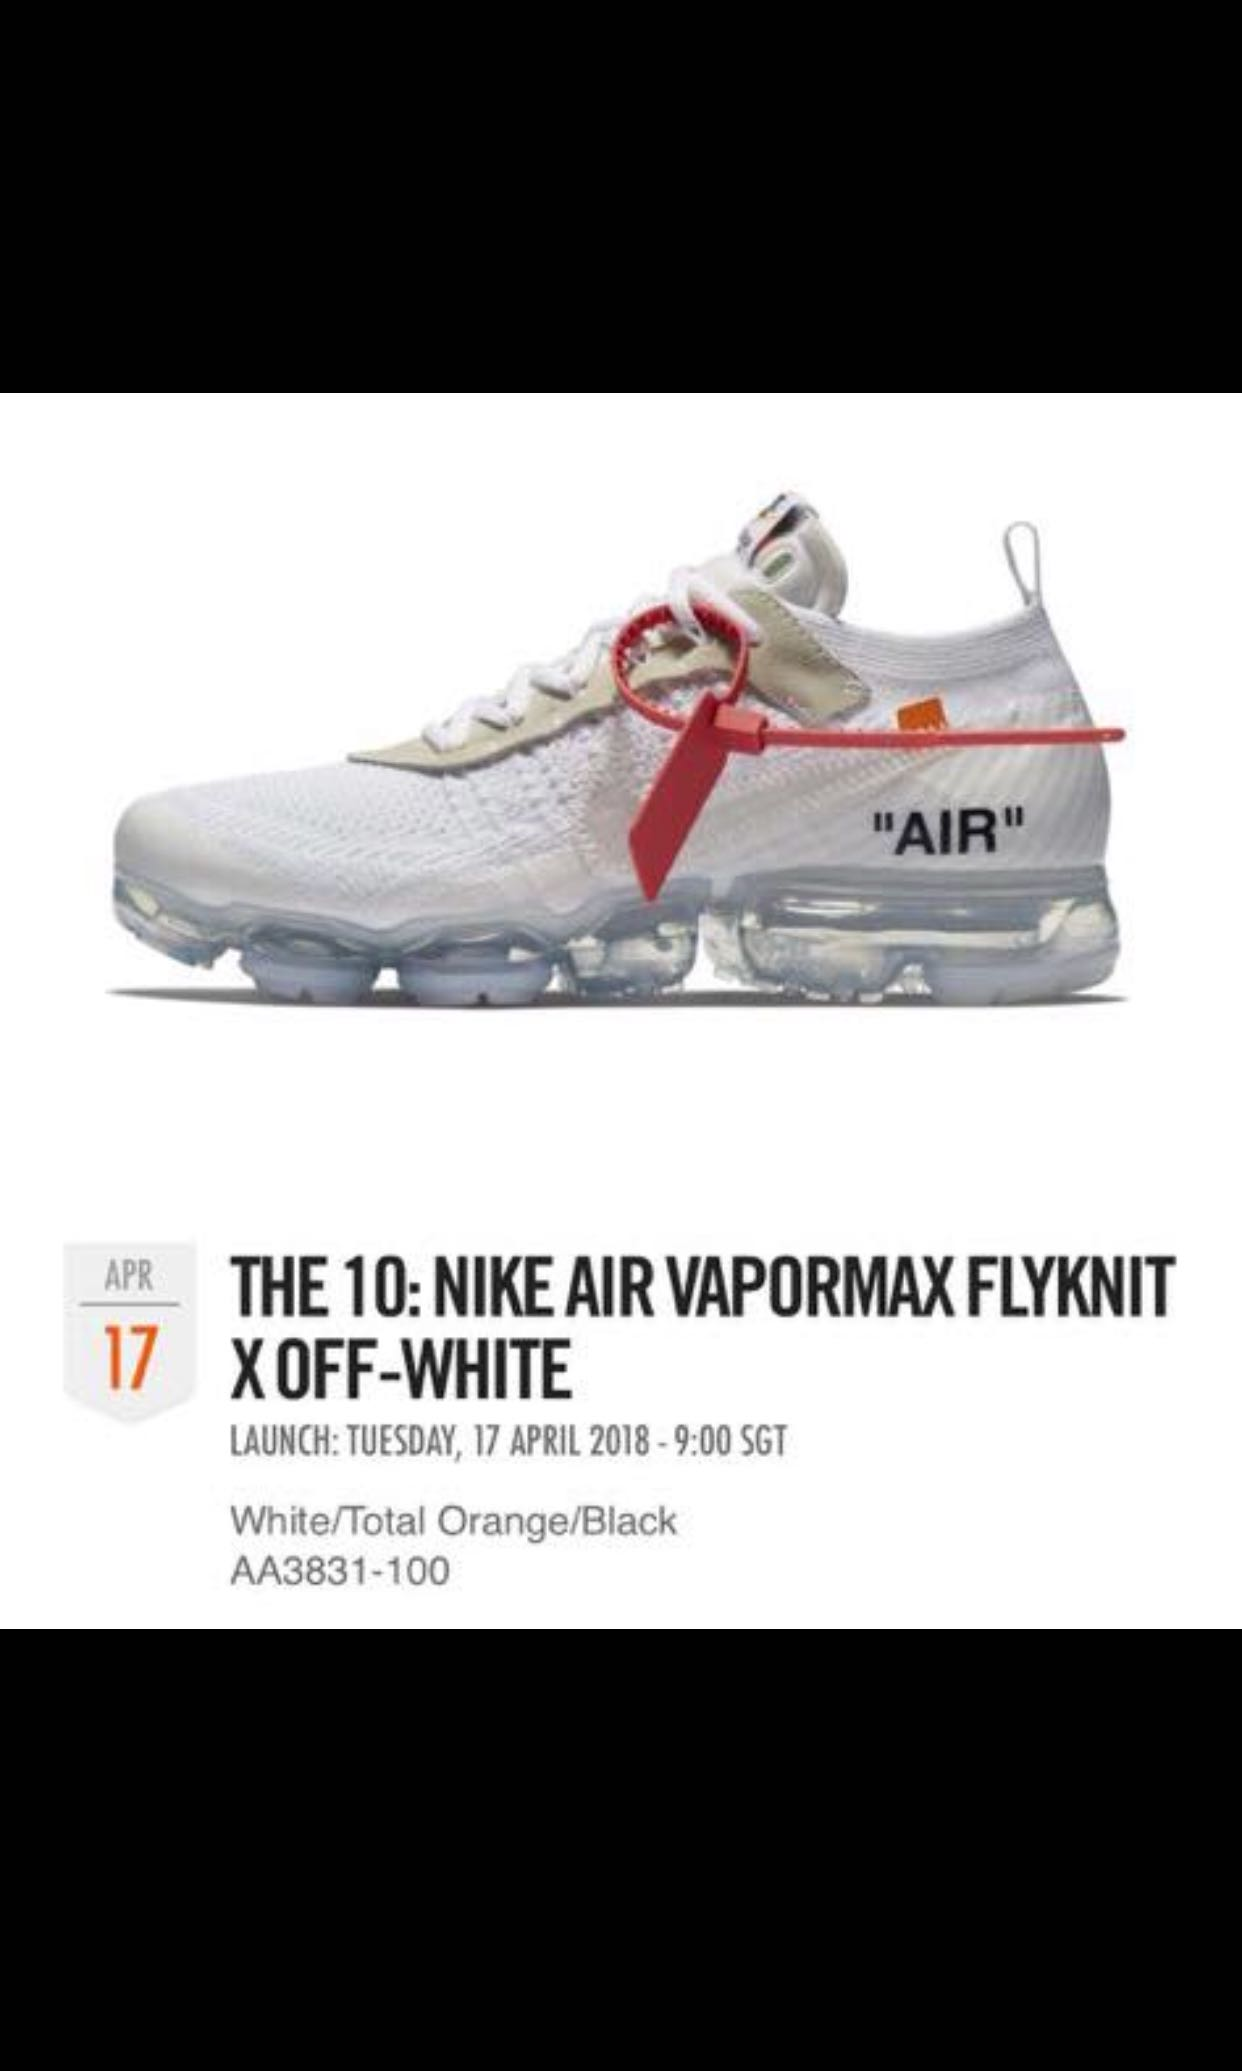 68273a76f310 THE 10  NIKE AIR VAPORMAX FLYKNIT X OFF-WHITE